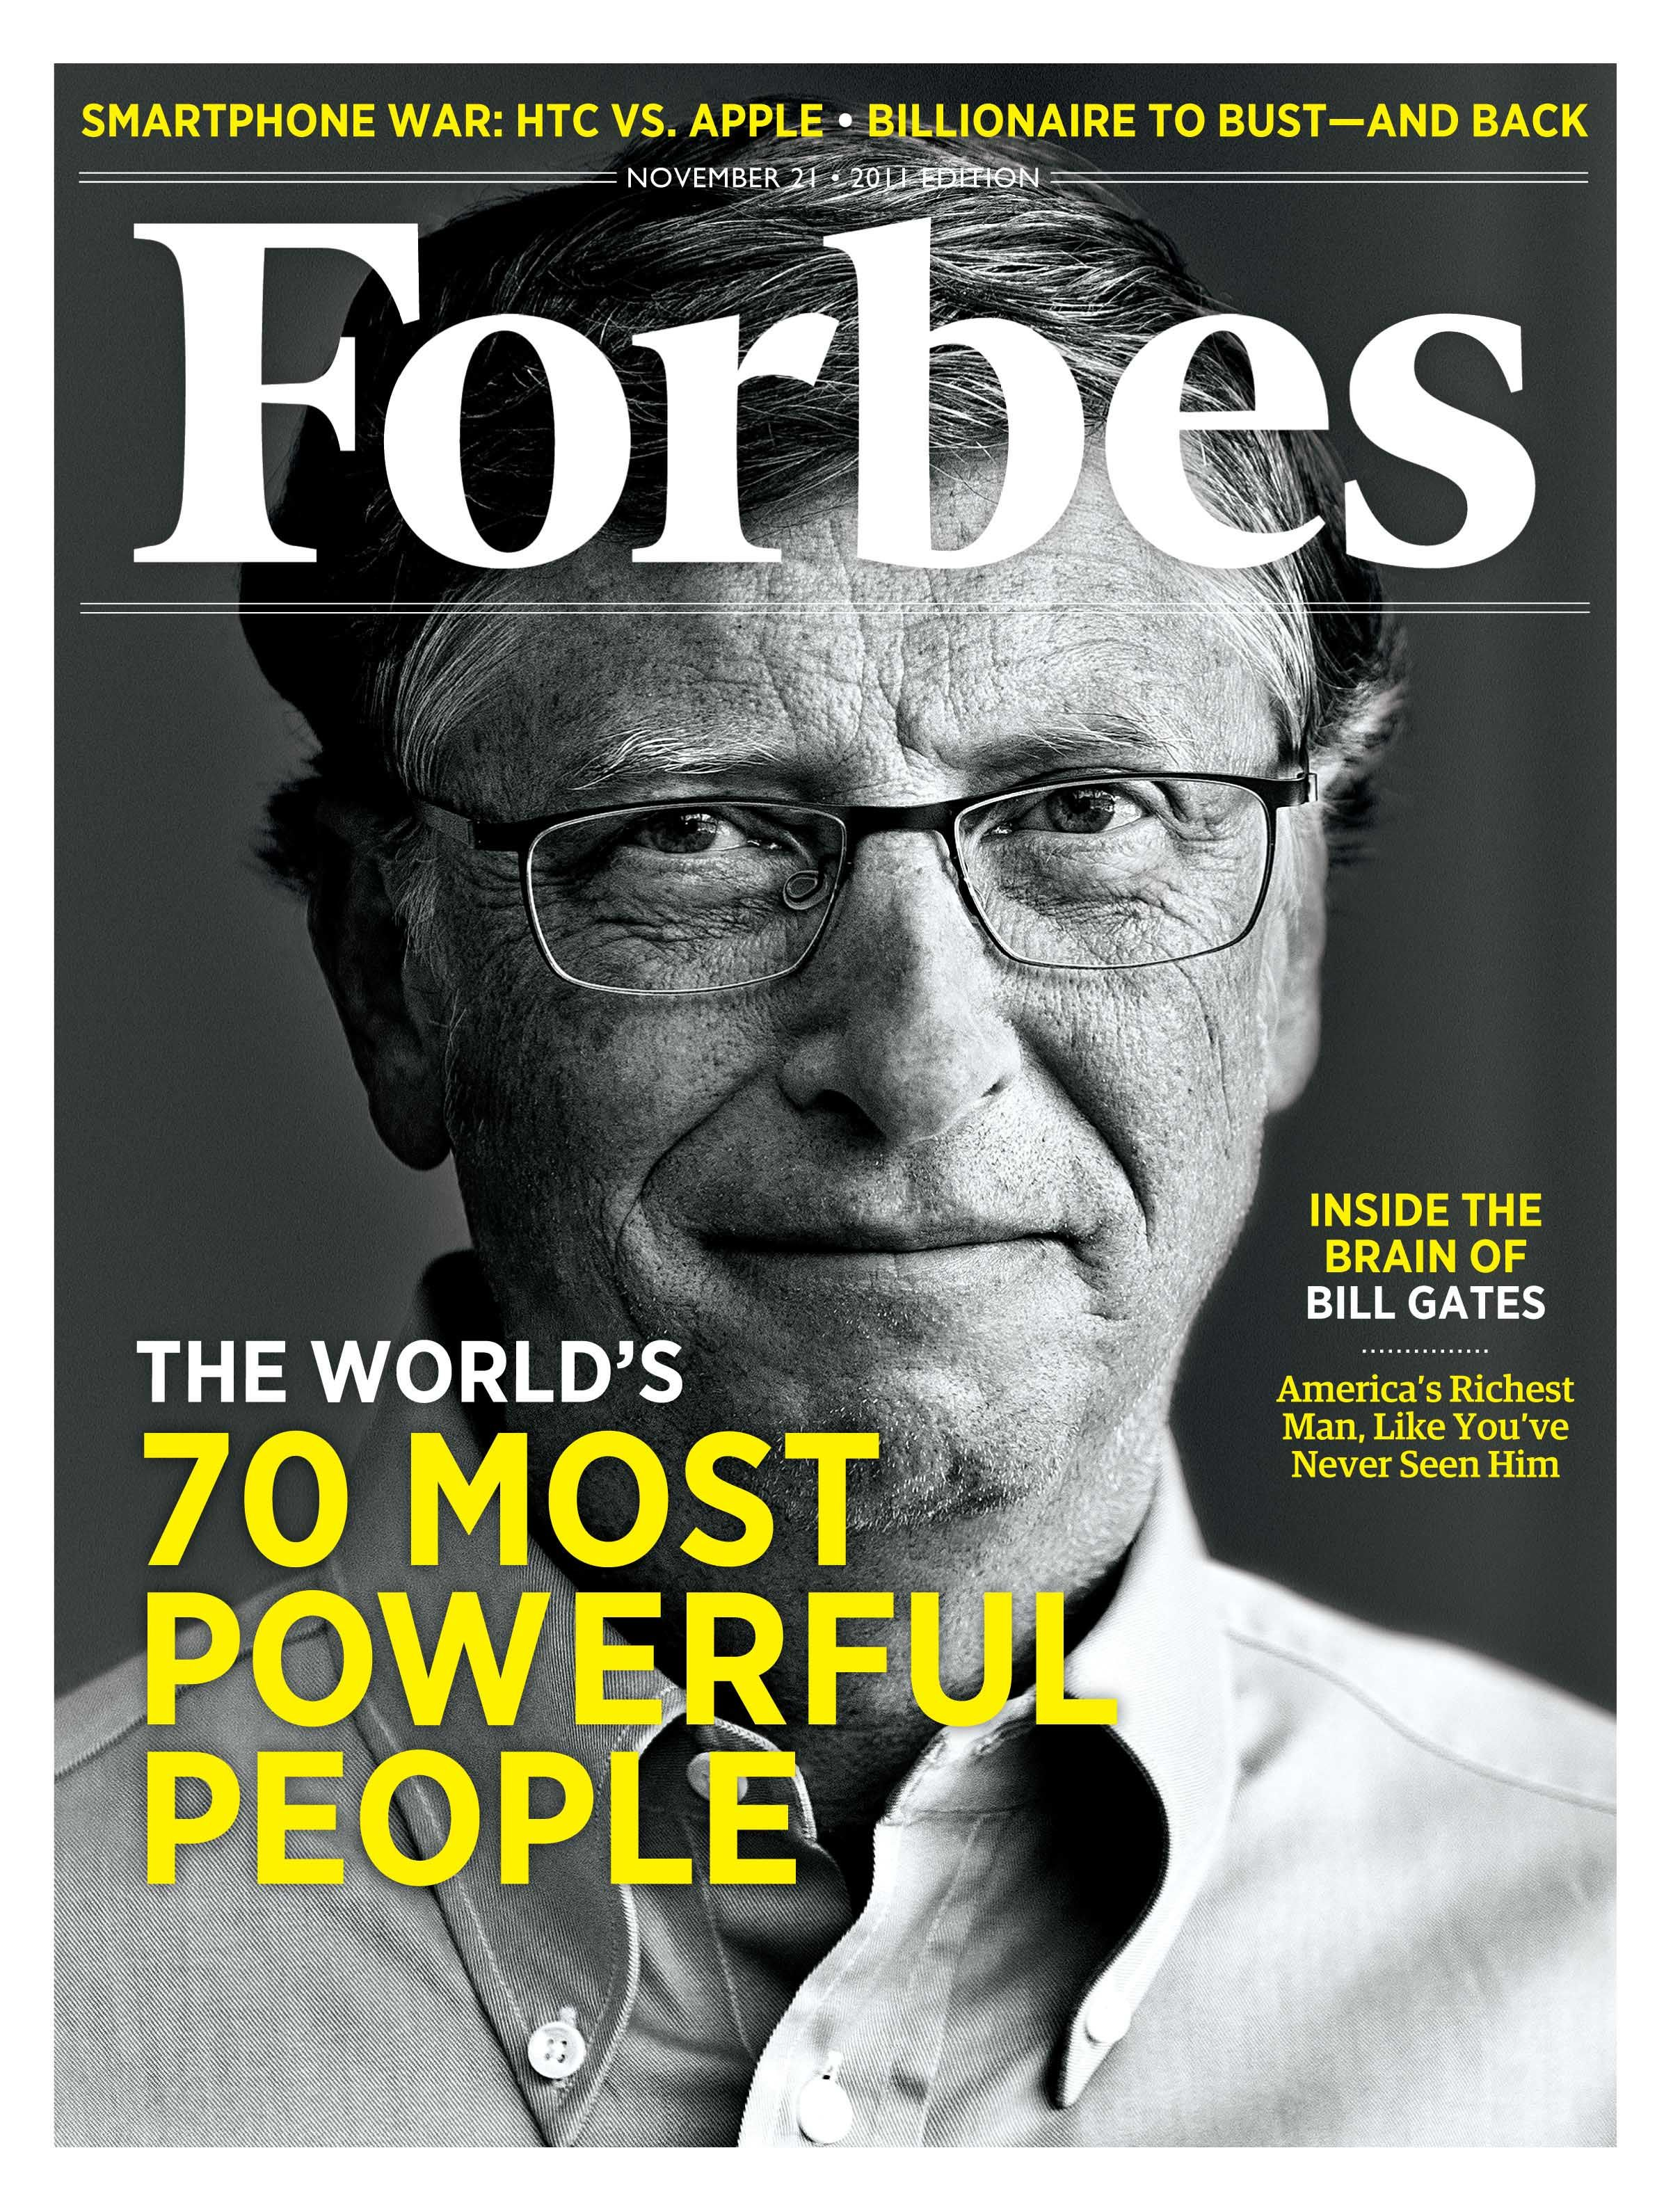 November 21, 2011 With Vaccines, Bill Gates Changes The World